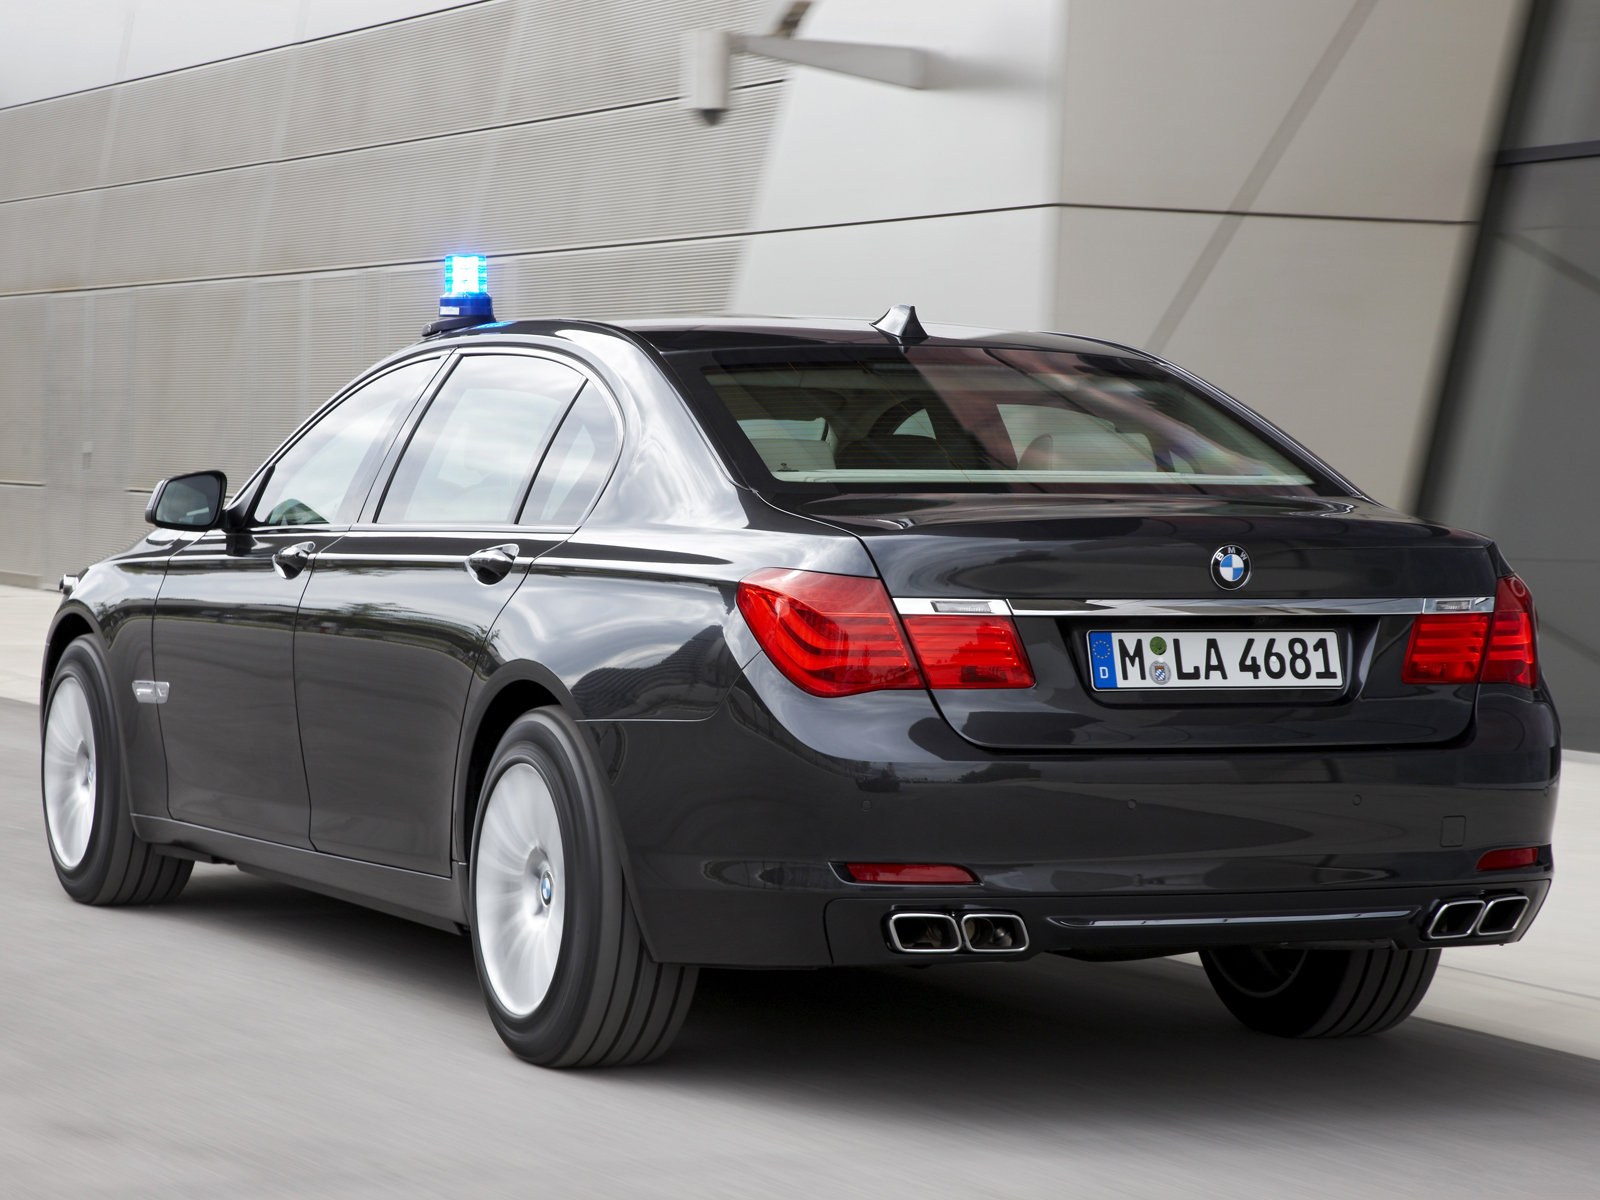 2010 bmw 7 series high security rear view